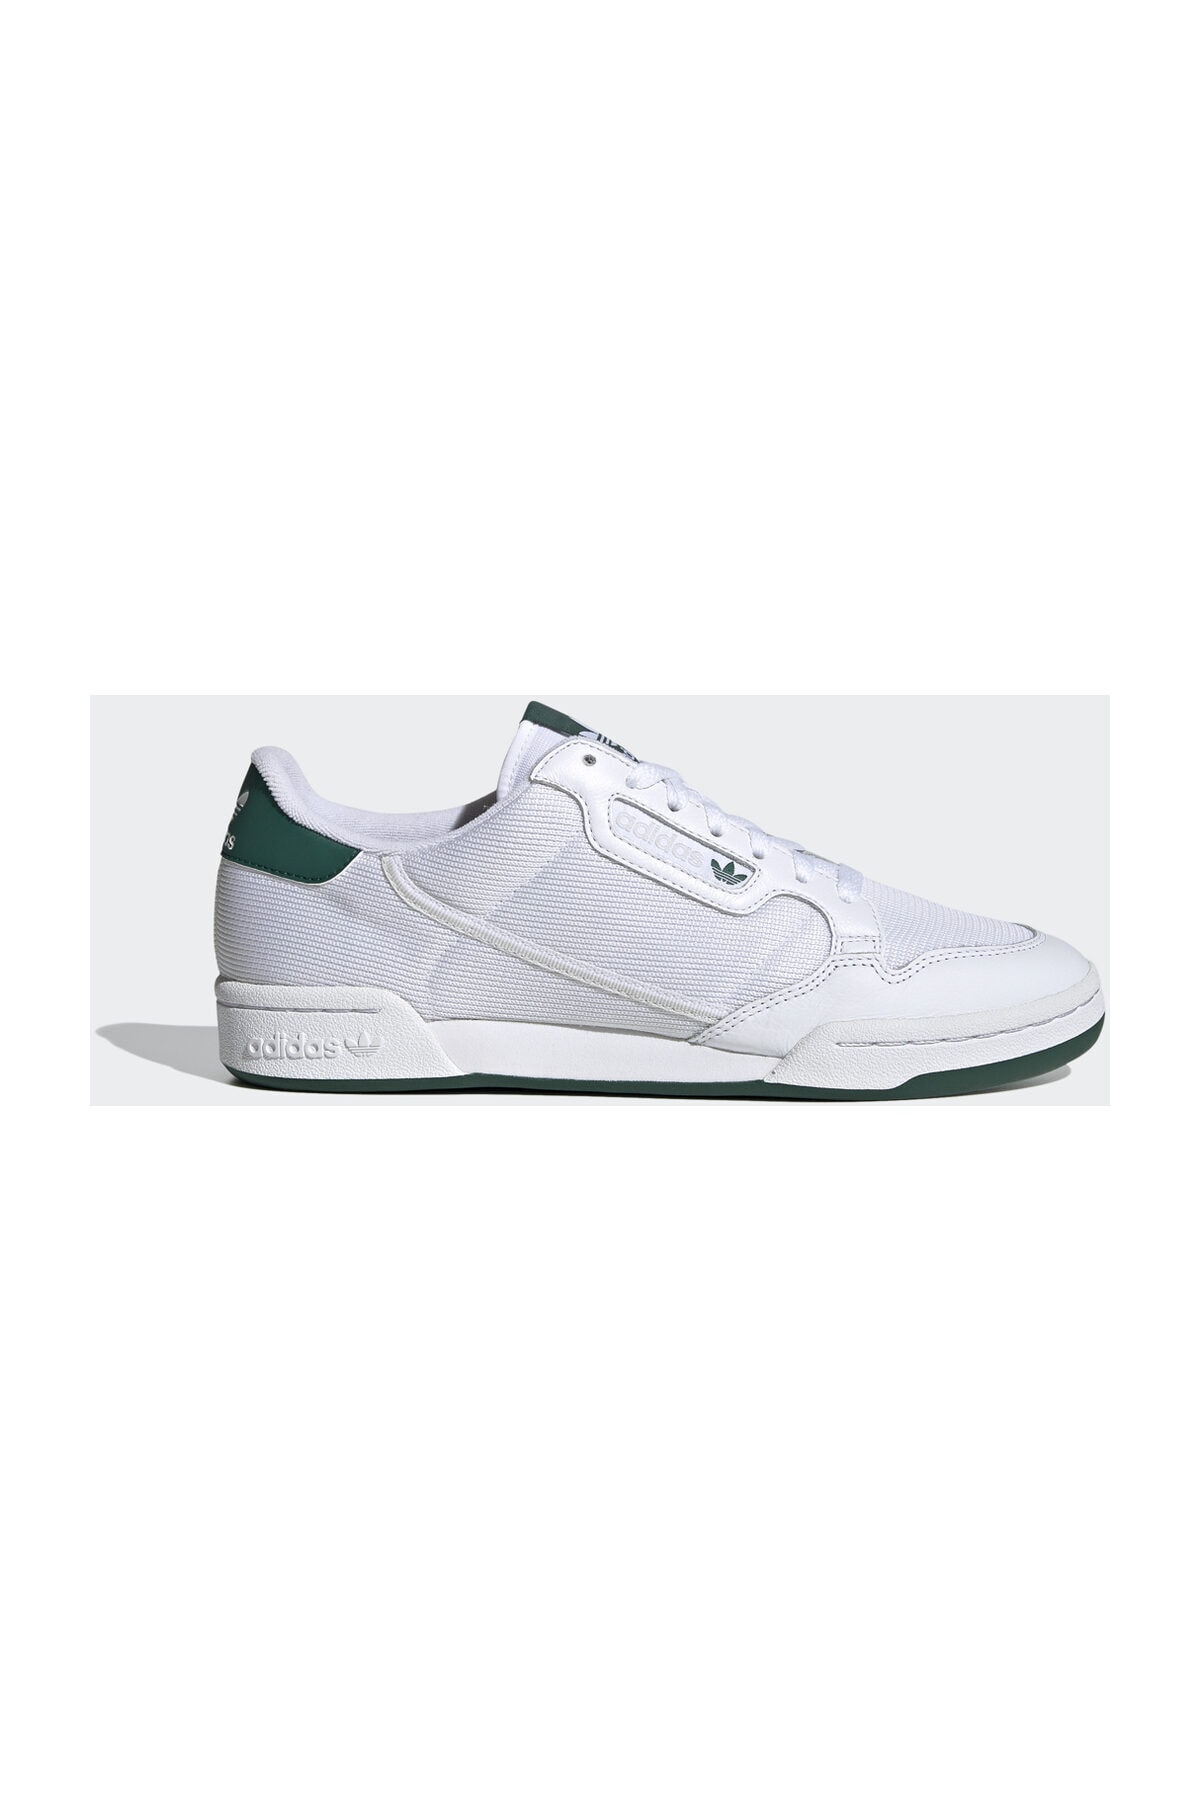 adidas CONTINENTAL Sneaker 80      FTWWHT/GREONE/CGREEN 2